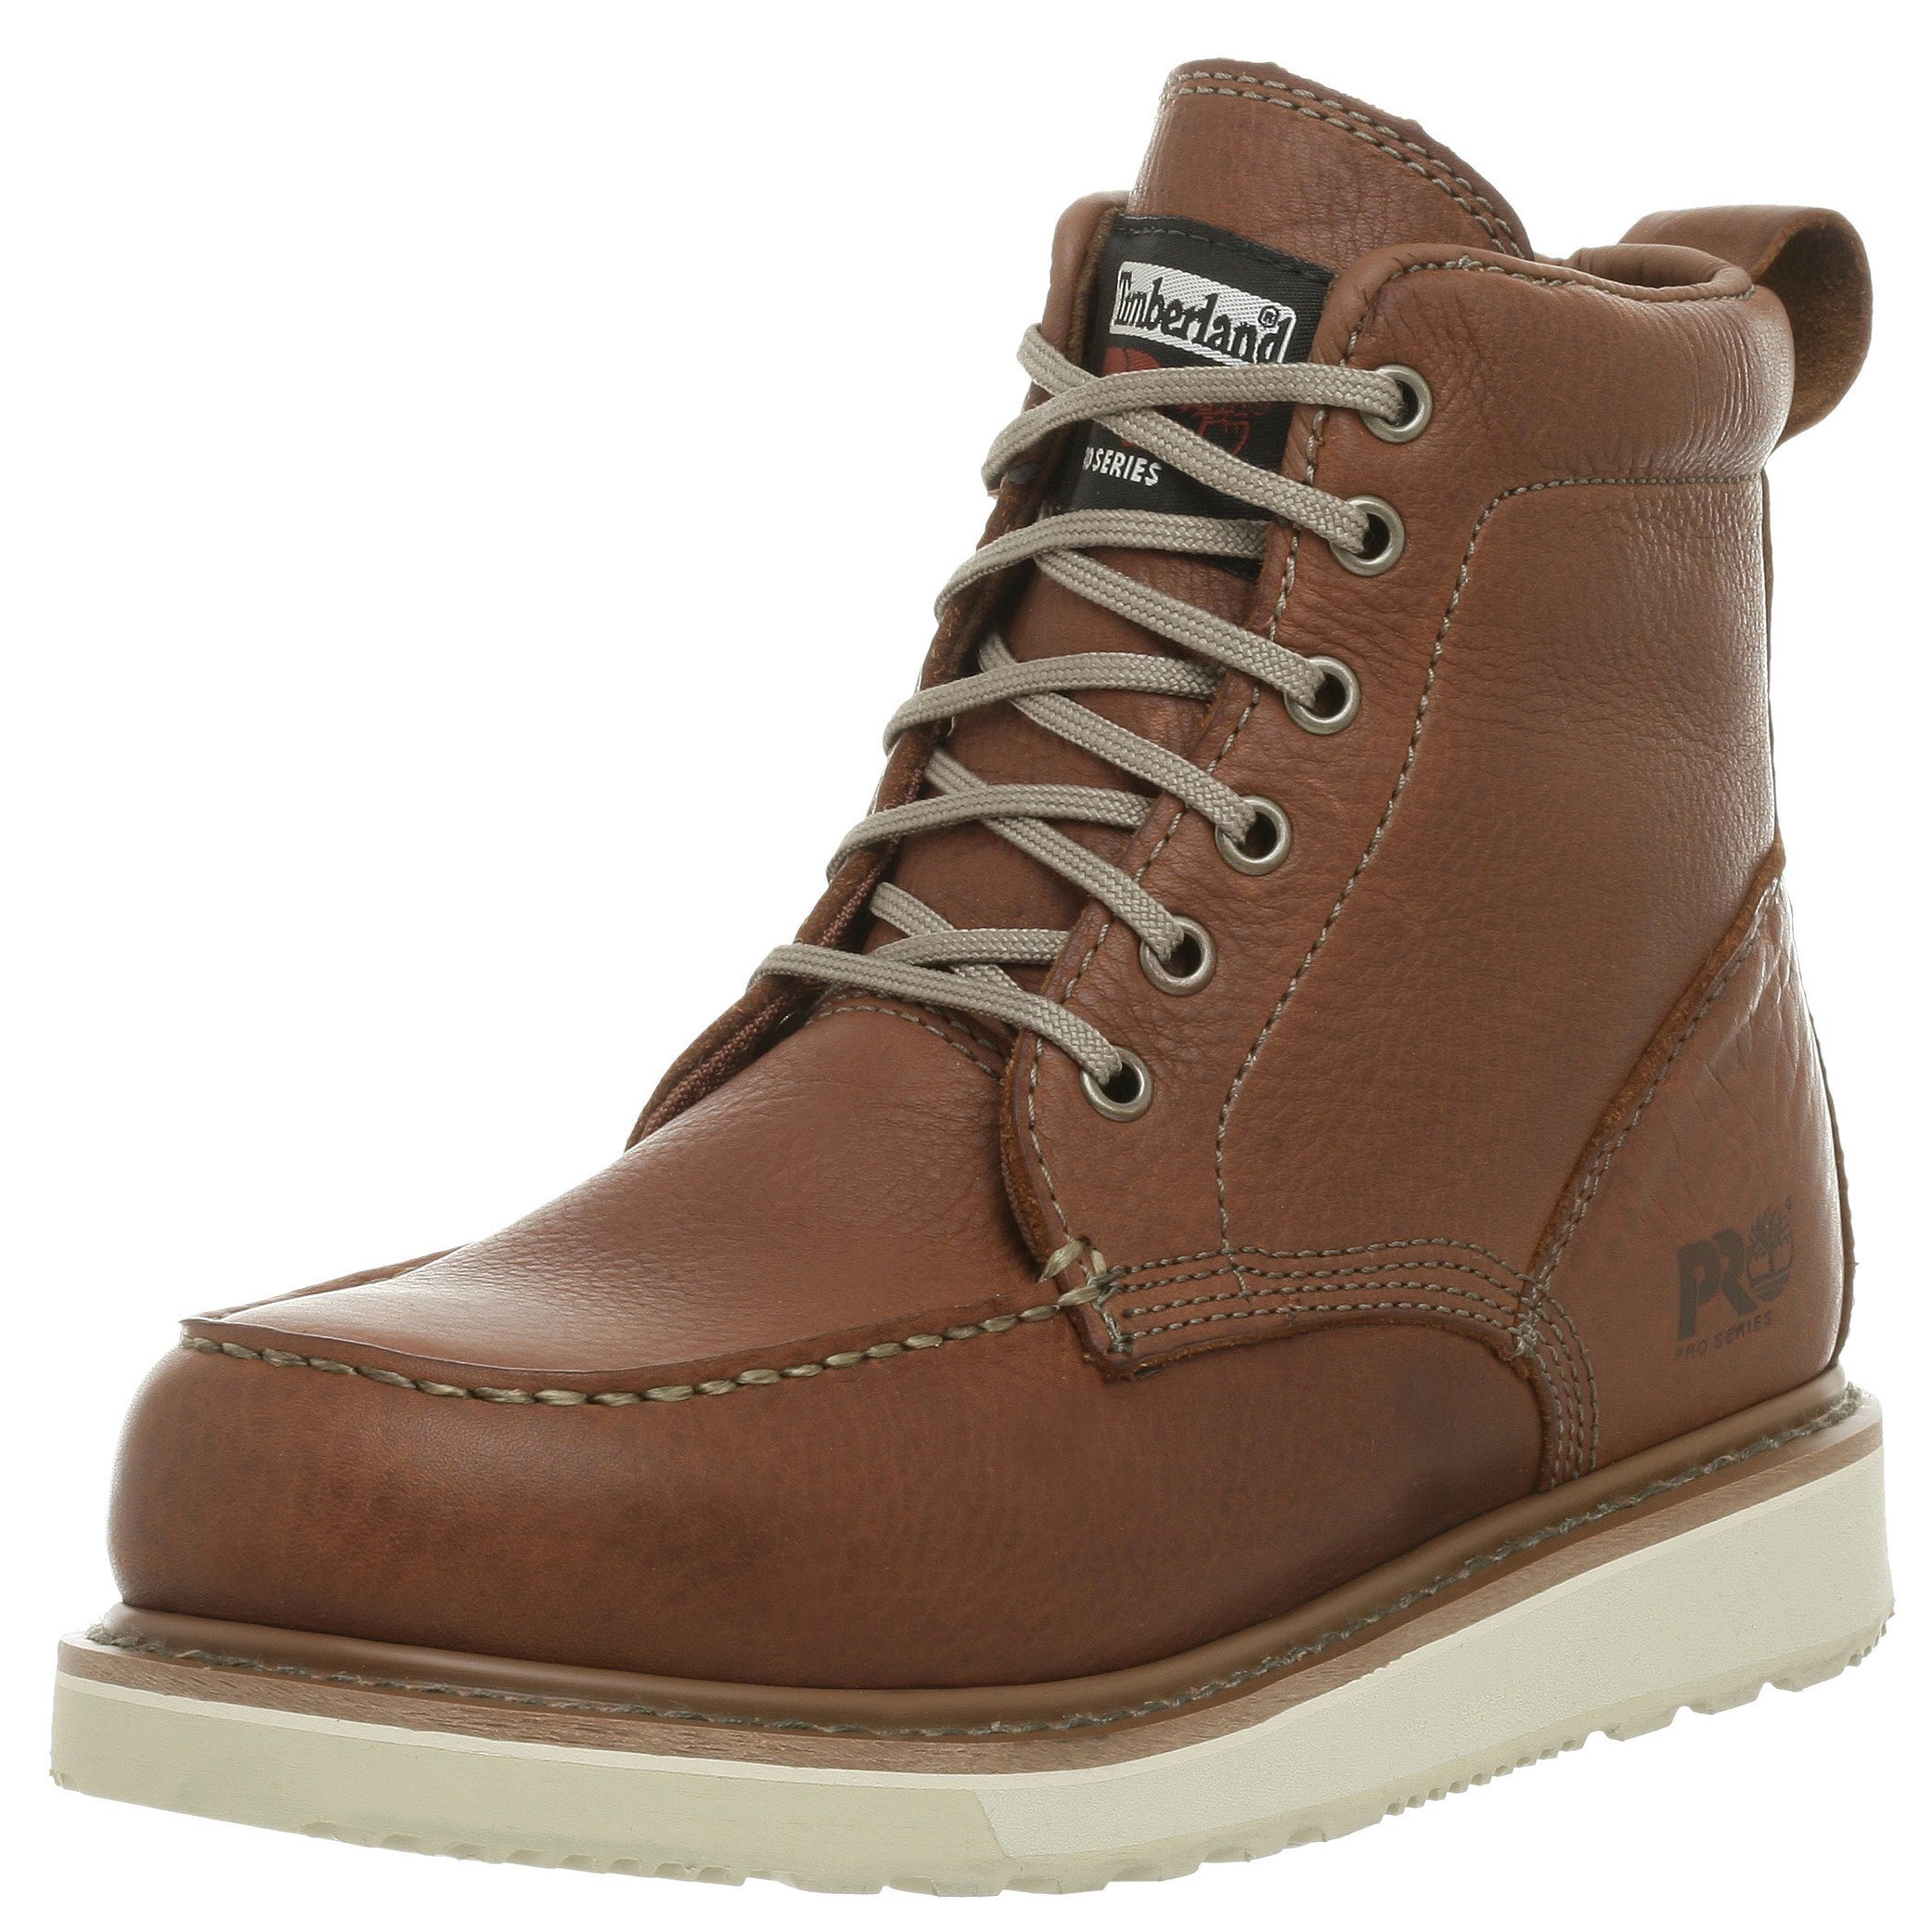 Timberland PRO Men's 53009 Wedge Sole 6'' Soft-Toe Boot,Rust,10.5 W